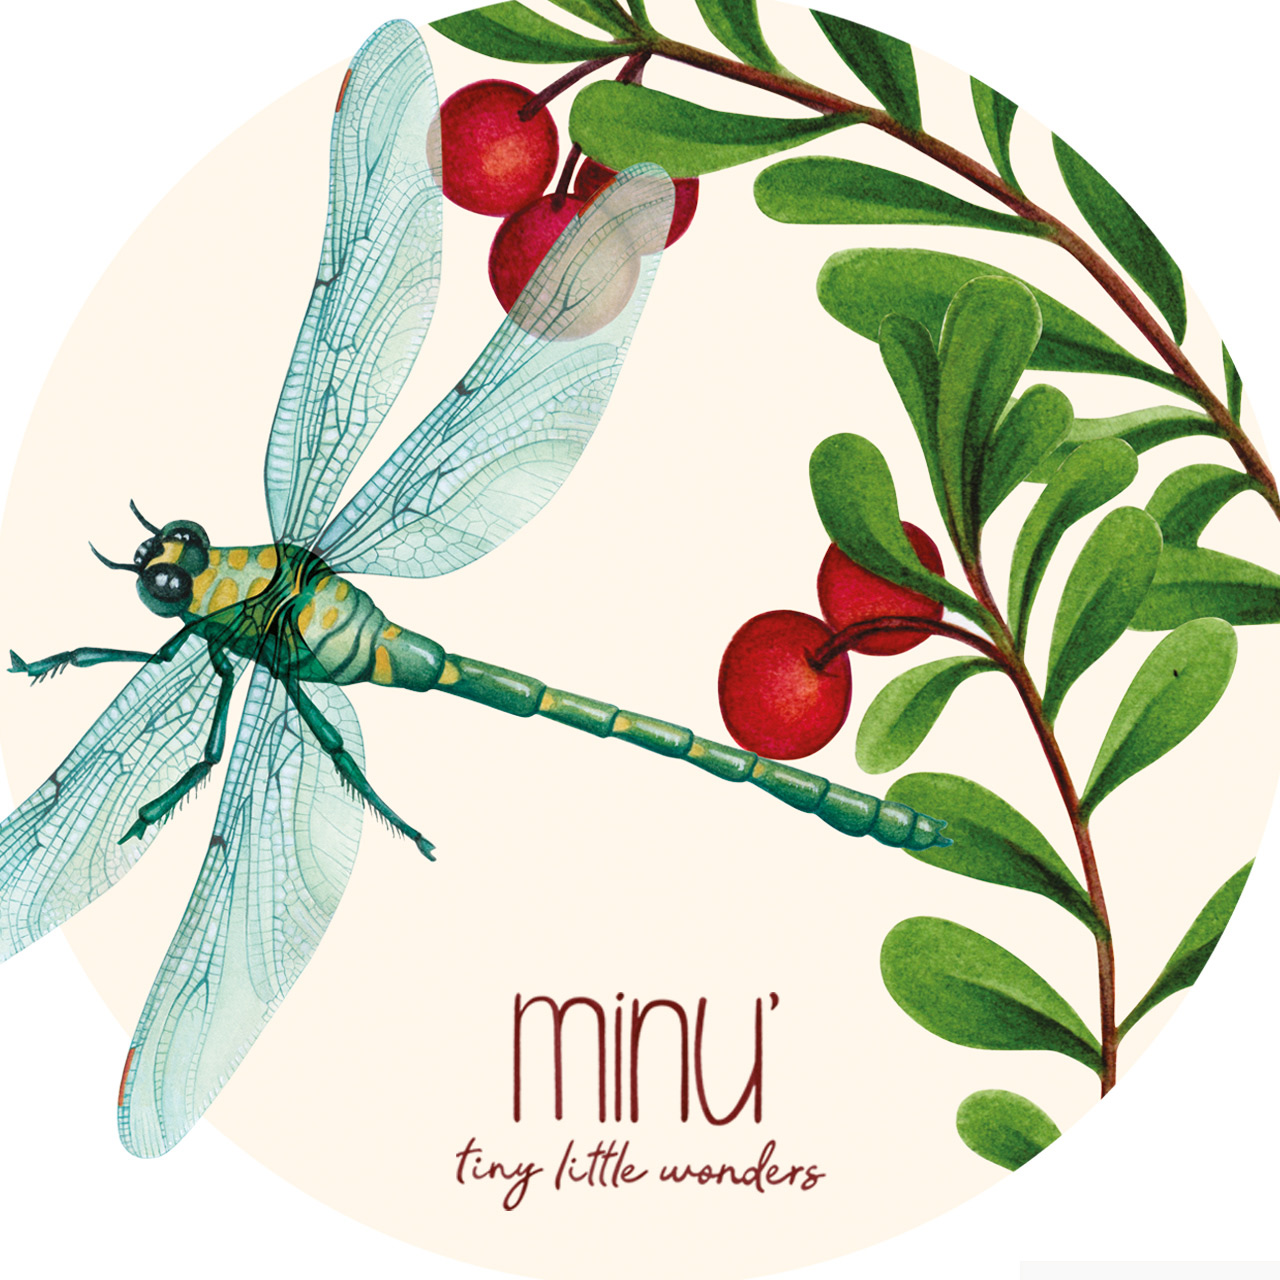 Yu.me minu collection dragonfly